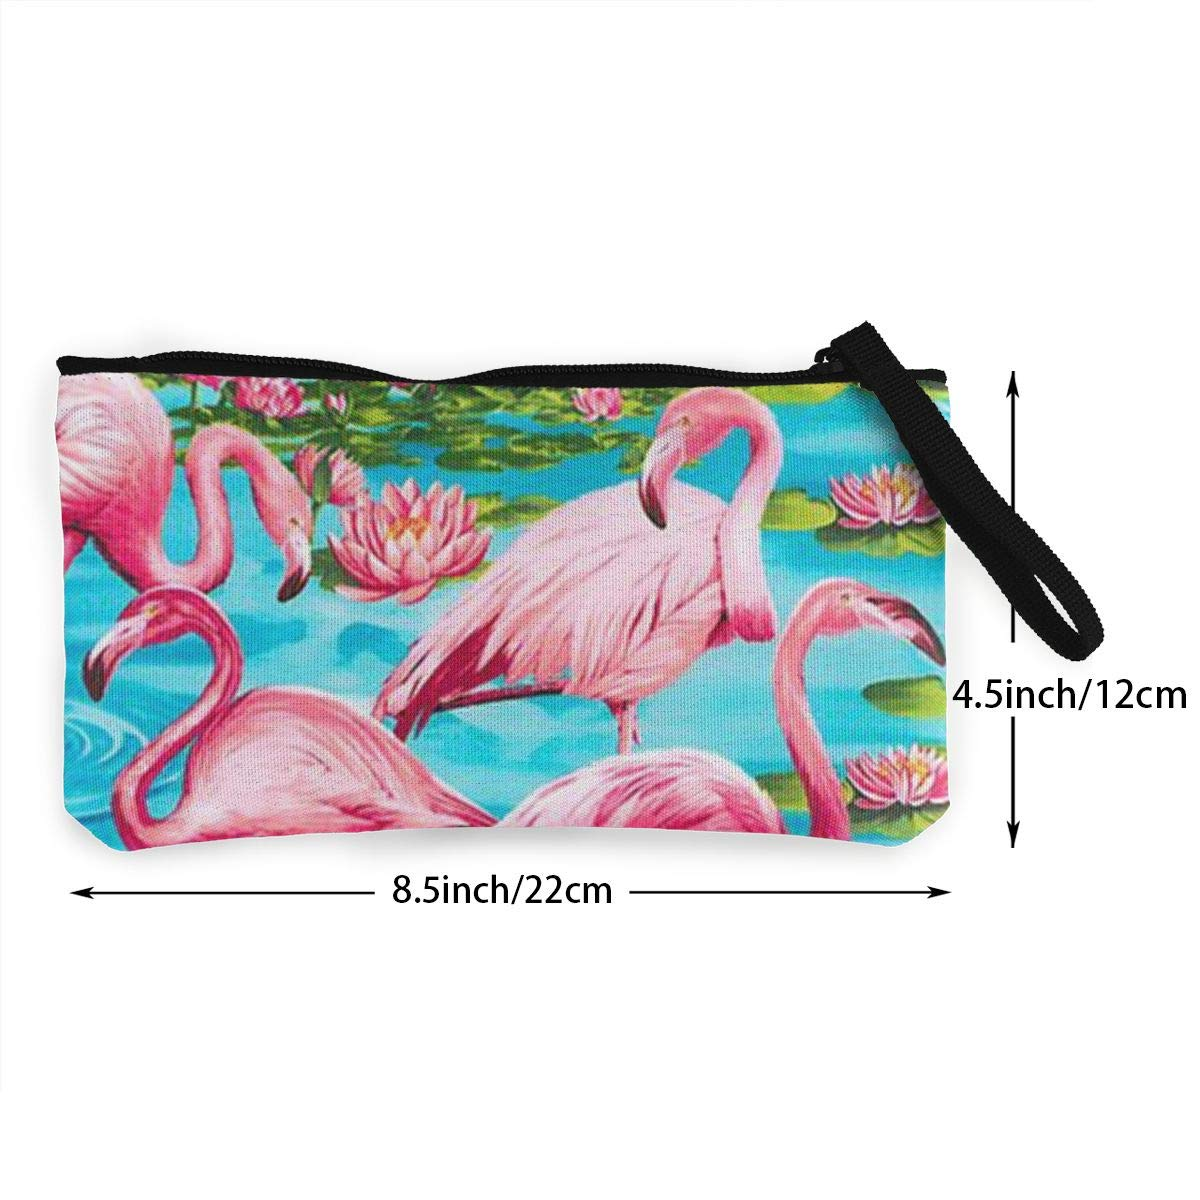 Coin Pouch Lotus Leaf Canvas Coin Purse Cellphone Card Bag With Handle And Zipper